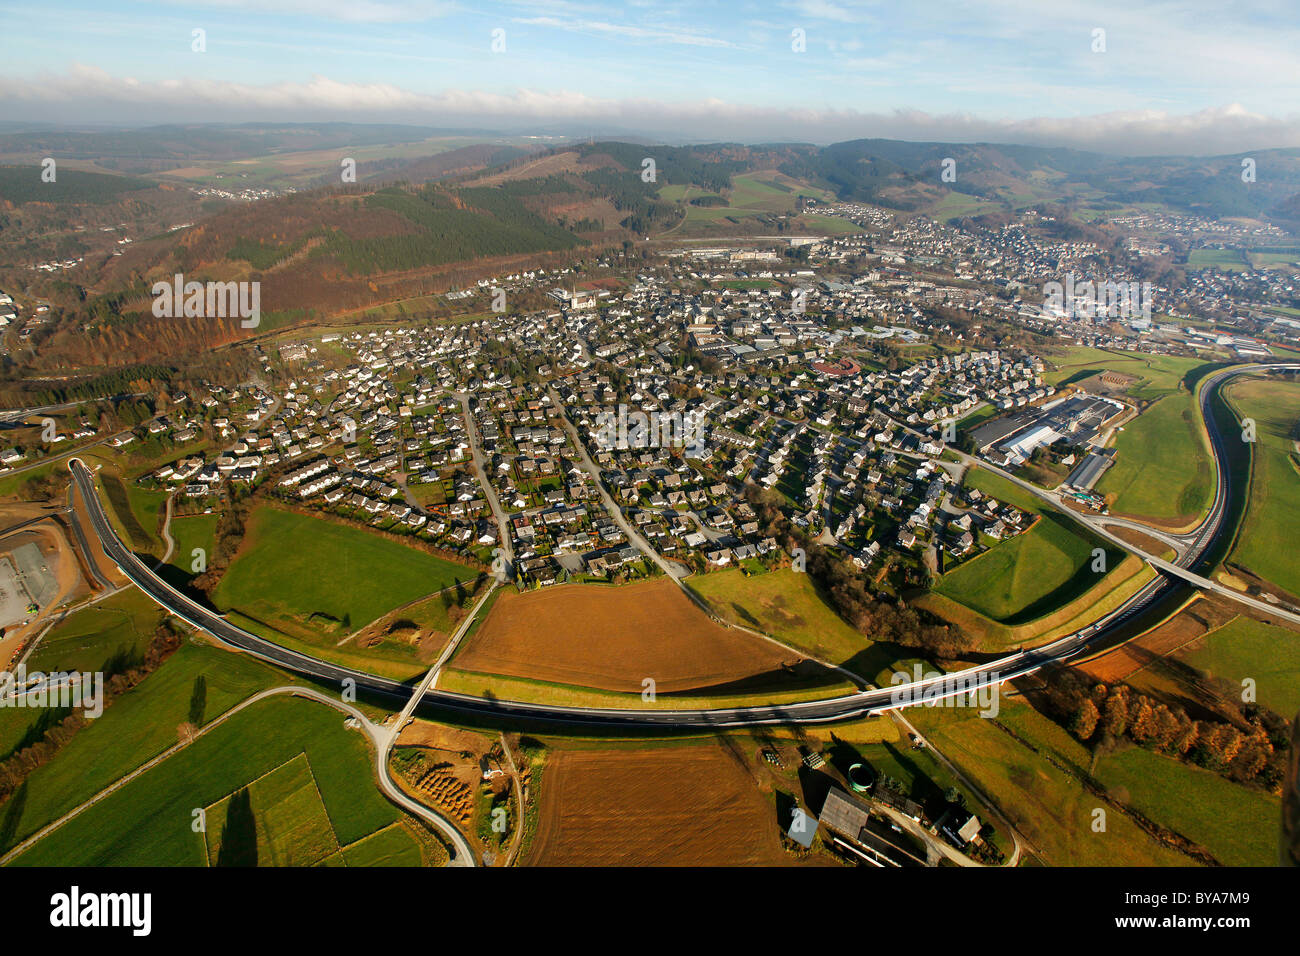 Bypass Aerial Stock Photos & Bypass Aerial Stock Images - Alamy